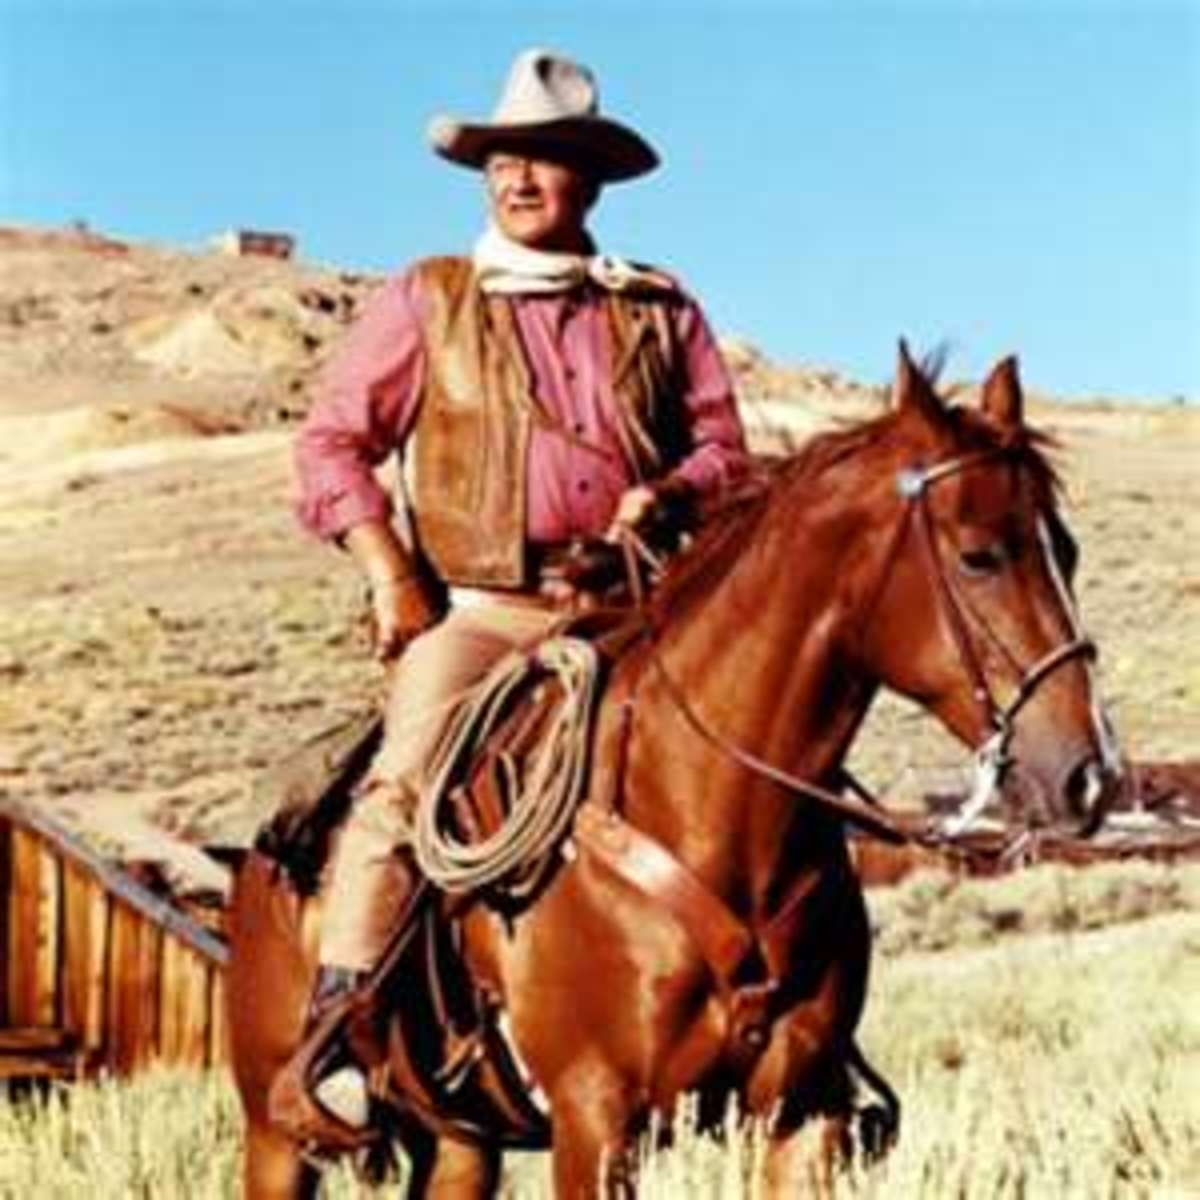 """John Wayne in any of his Classic Westerns: """"Rio Lobo"""", """"Sons of Katie Elder"""", """"El Dorado"""", """"The War Wagon"""", """"The Cowboys""""...Etc.  (picture found on: http://www.allposters.com/-sp/John-Wayne-Posters_i2621411_.htm)"""